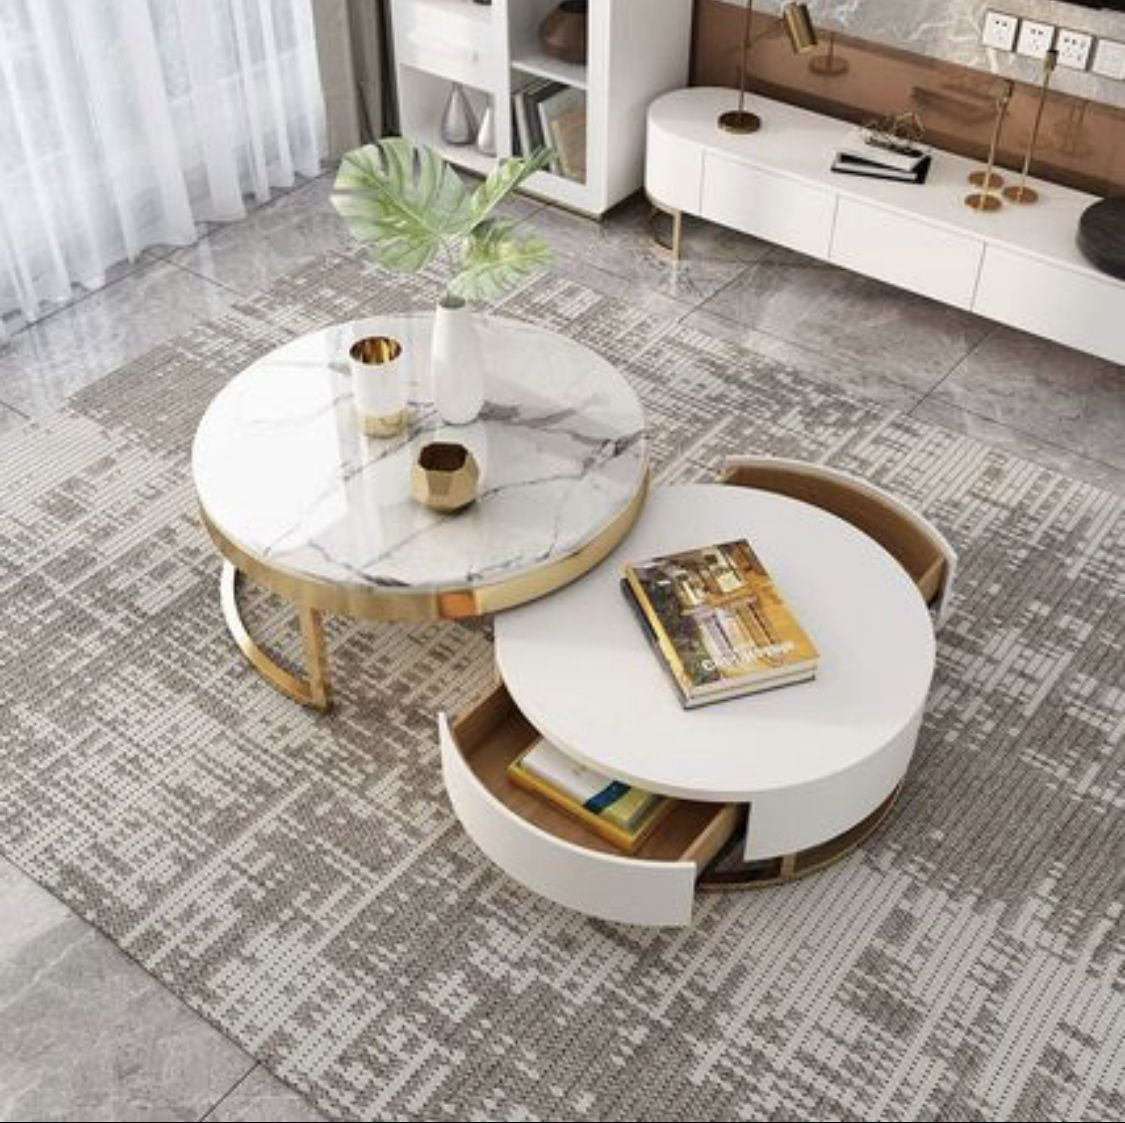 Pin By Butigirl On My House Ideas In 2020 Marble Coffee Table Living Room Round Coffee Table Modern Coffee Table [ 1123 x 1125 Pixel ]